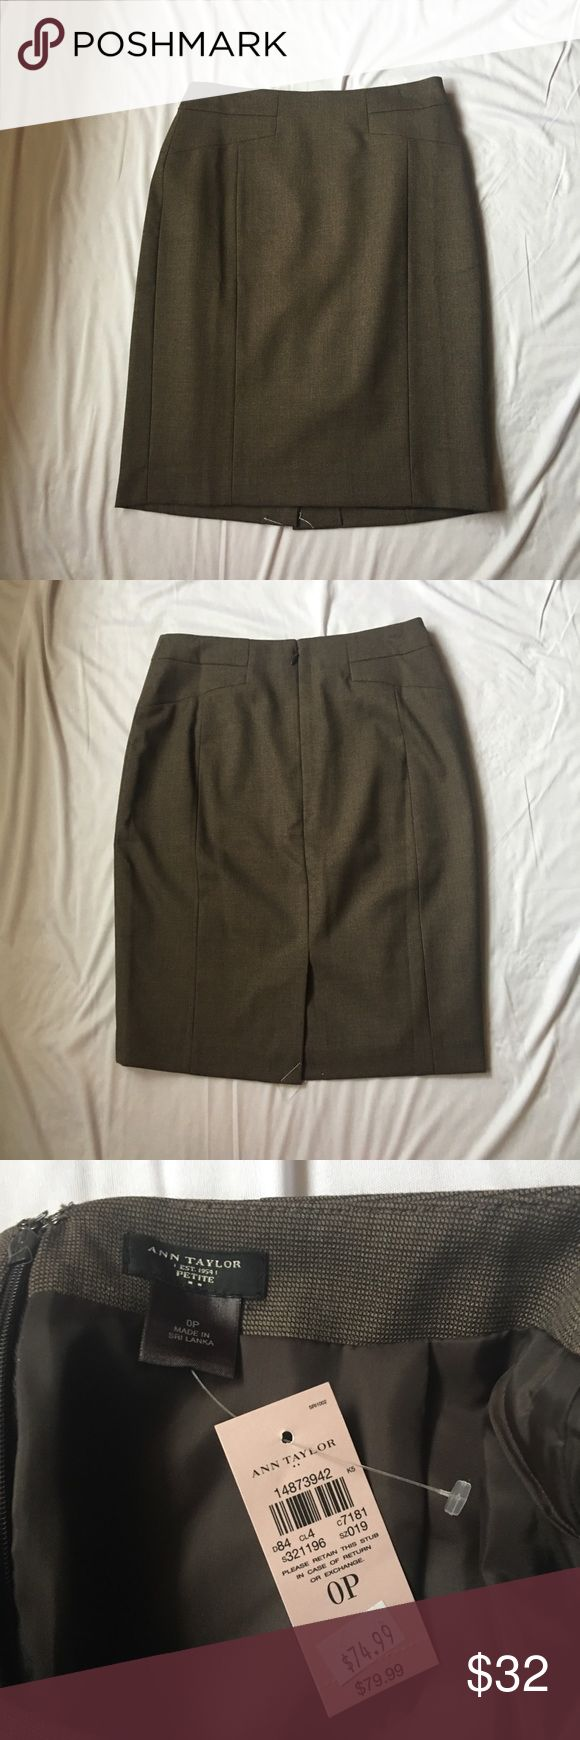 Ann Taylor Brown Pencil Skirt Beautiful brown pencil skirt from Ann Taylor in a size 0 petite. It is new with tags and no flaws. Ask any questions! Ann Taylor Skirts Pencil